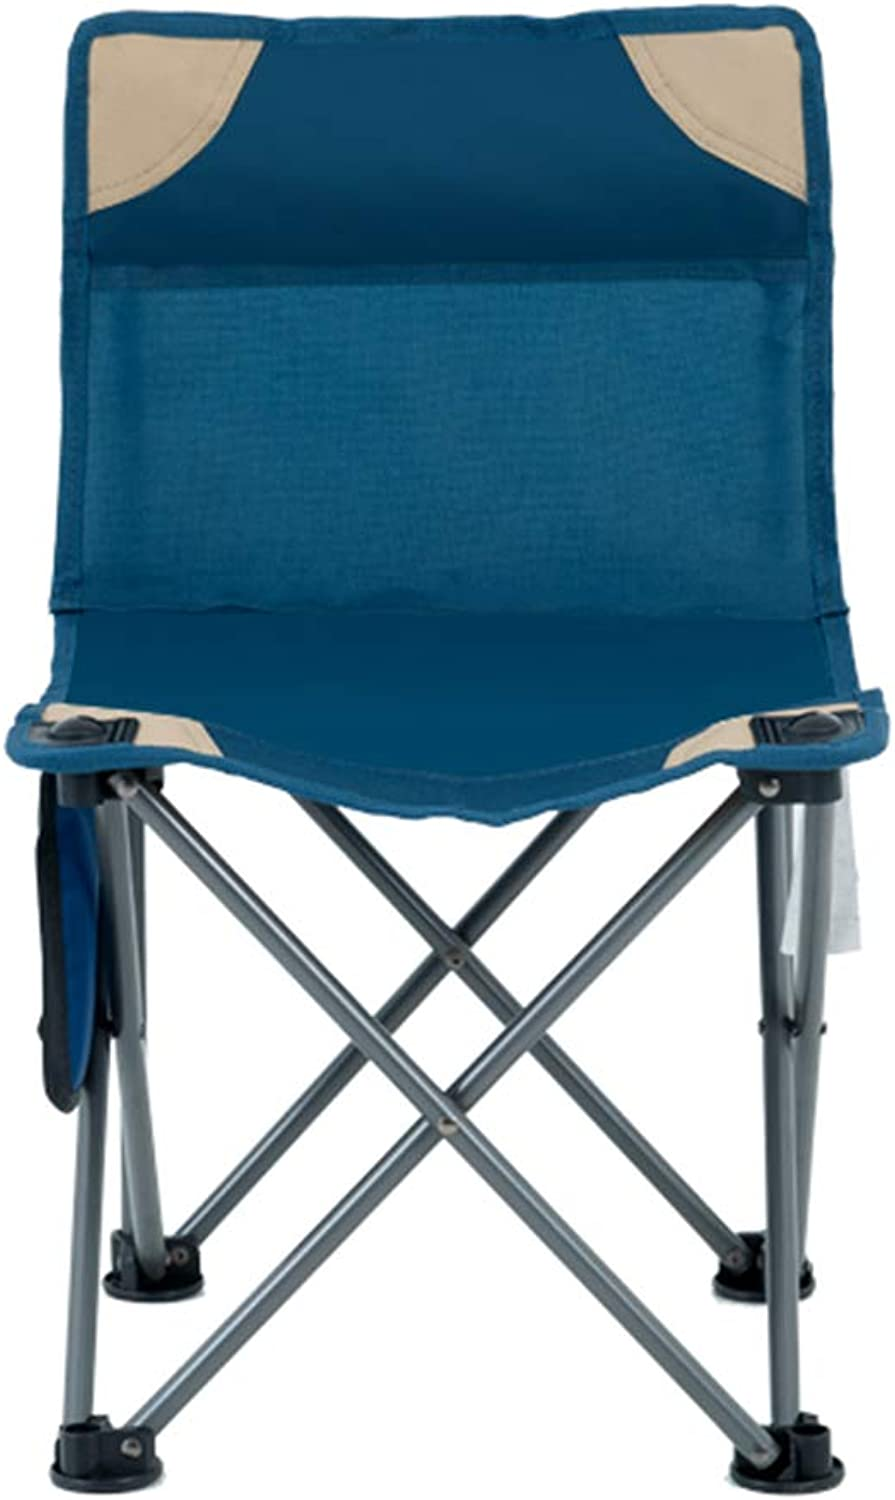 91e7ce8fa511 Folding Camping Chair with Storage Bag Stable Steel Bracket NonSlip ...